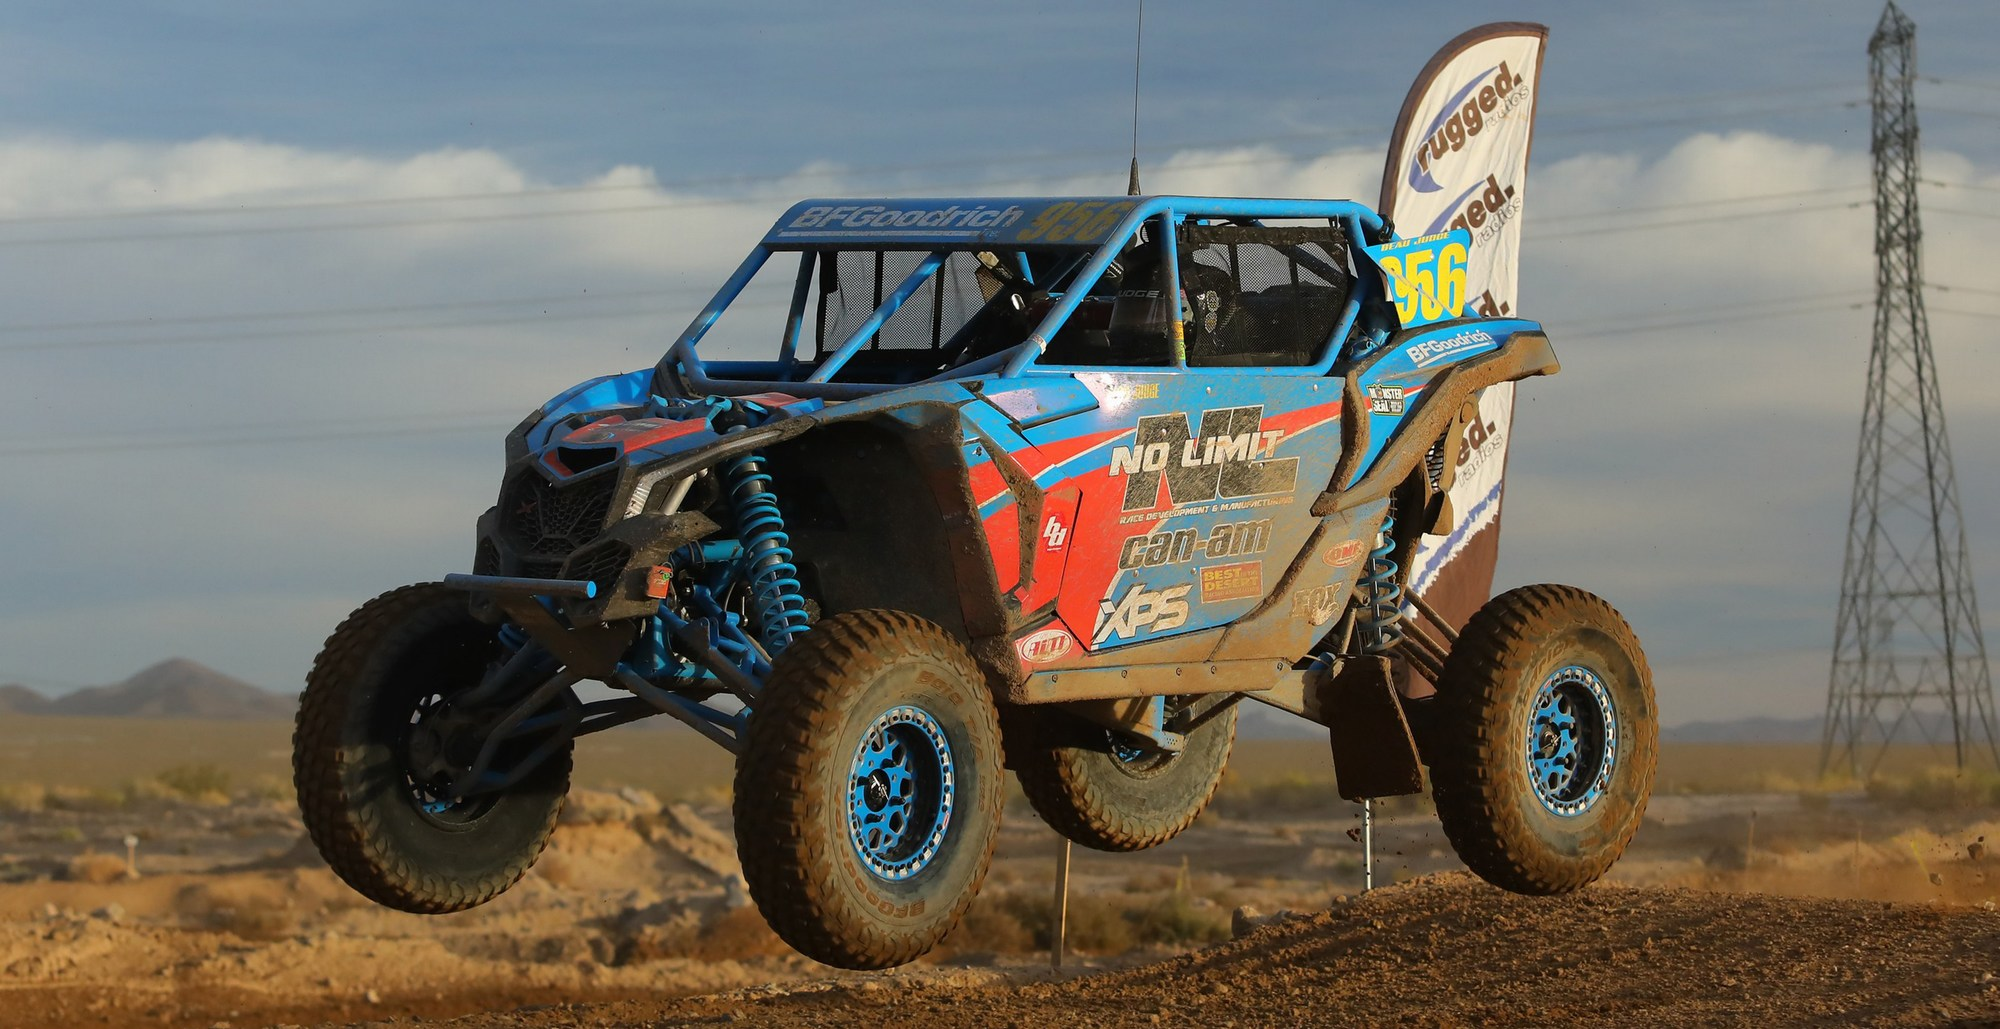 2018-09-beau-judge-desert-rugged-radios-utv-worcs-racing